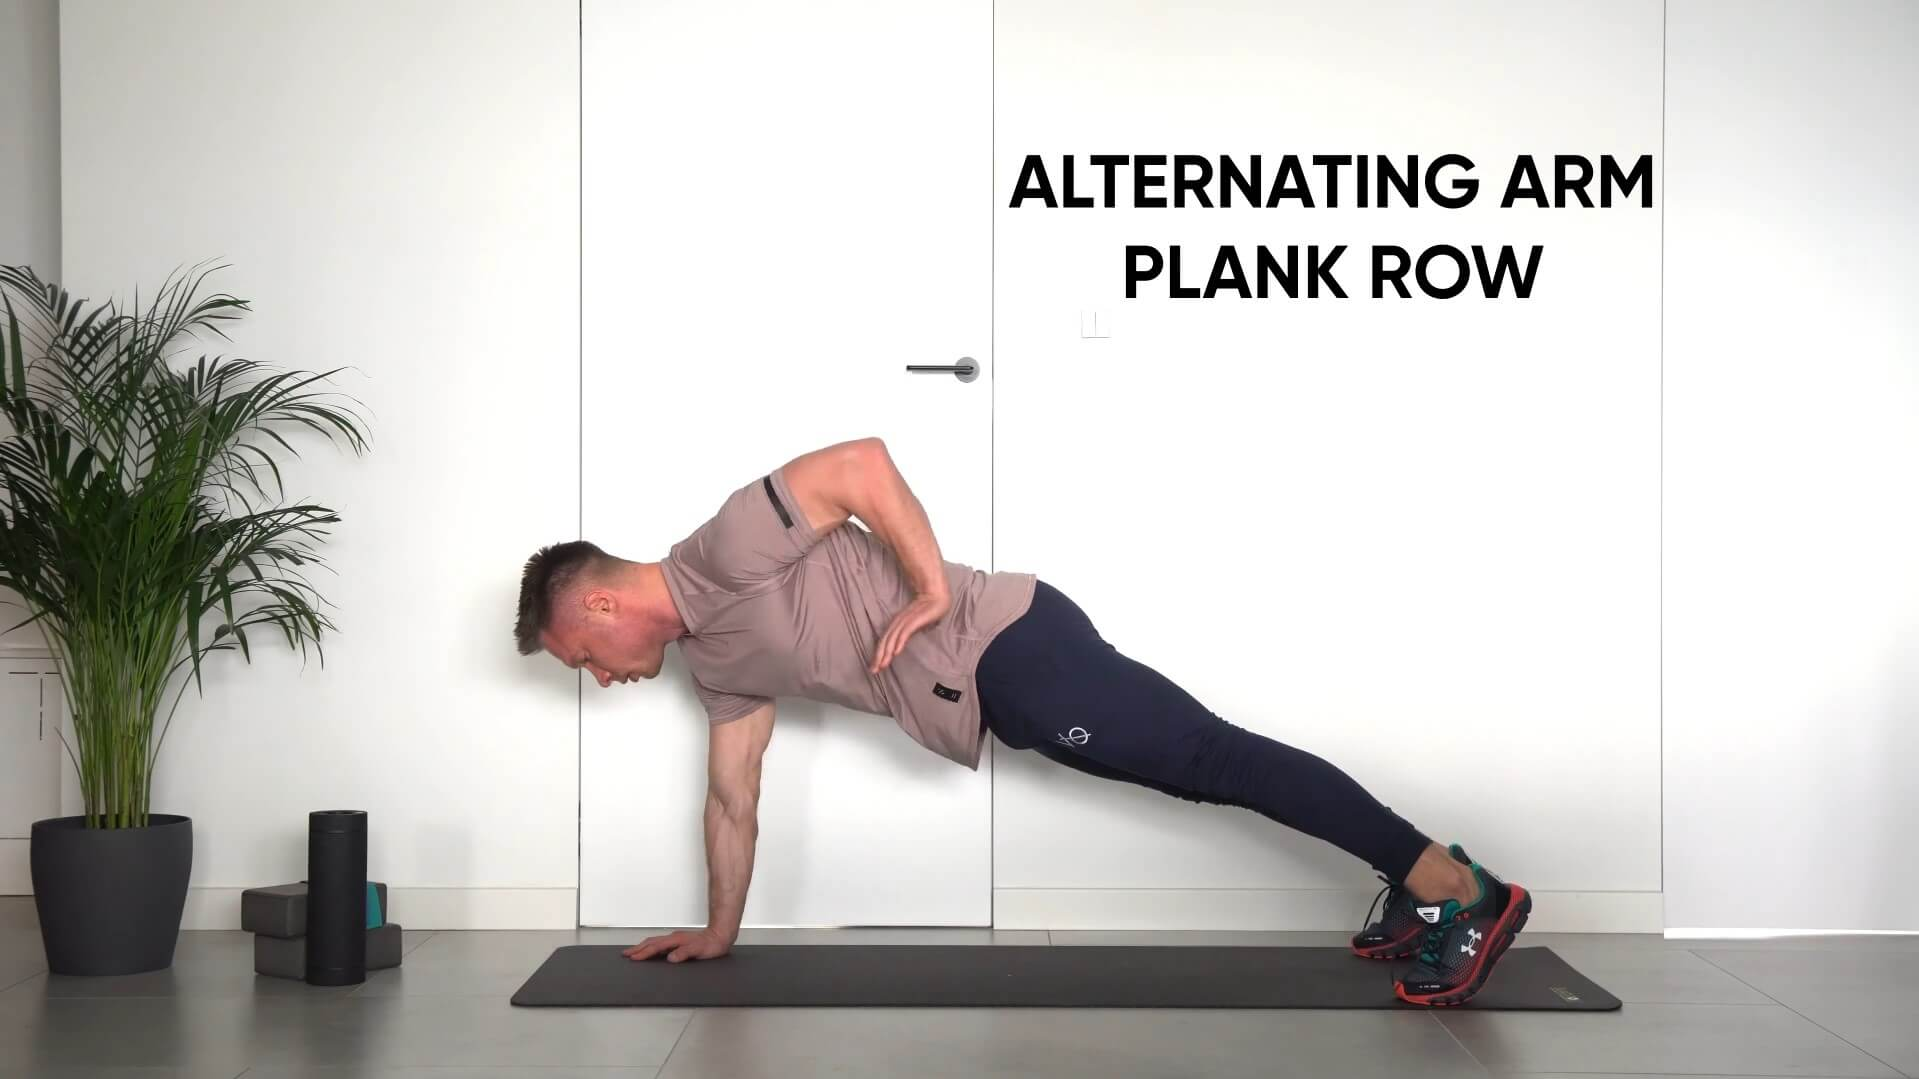 Alternating plank arm row